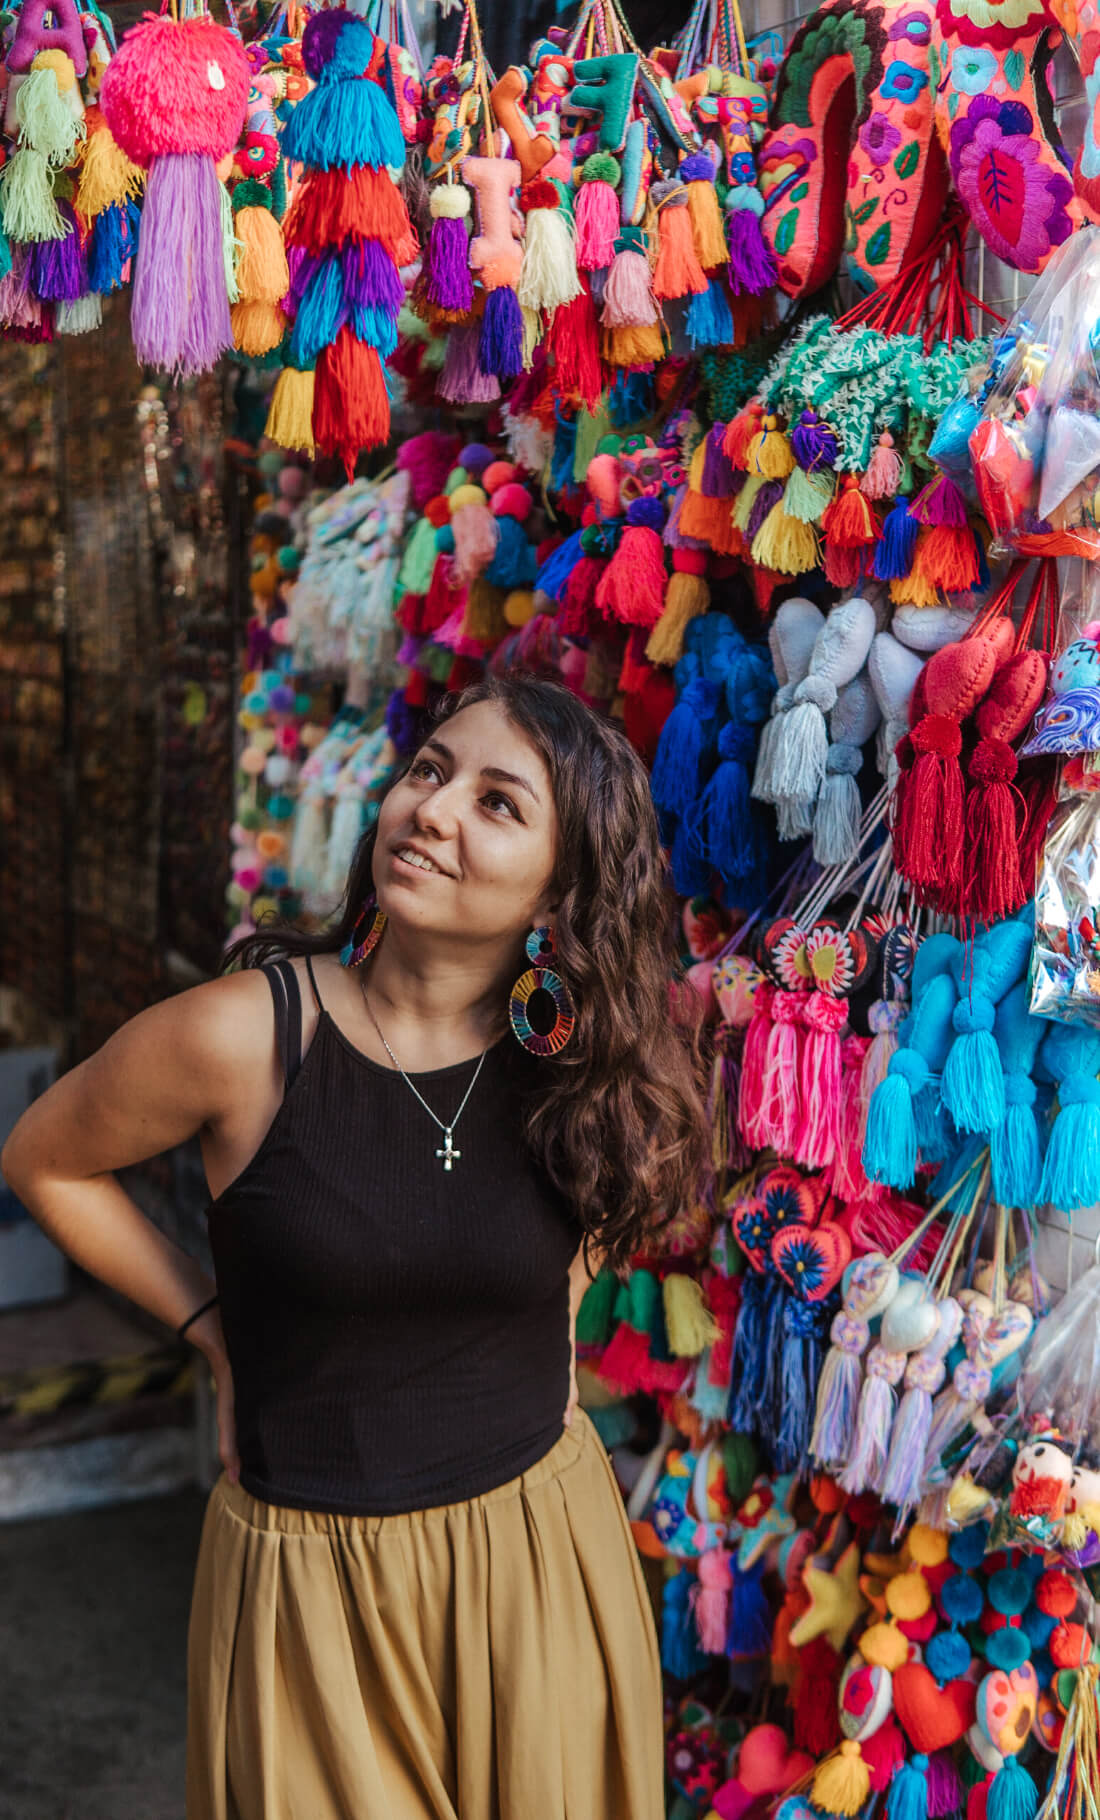 Stacey Valle standing in front of a colorful market vendor display